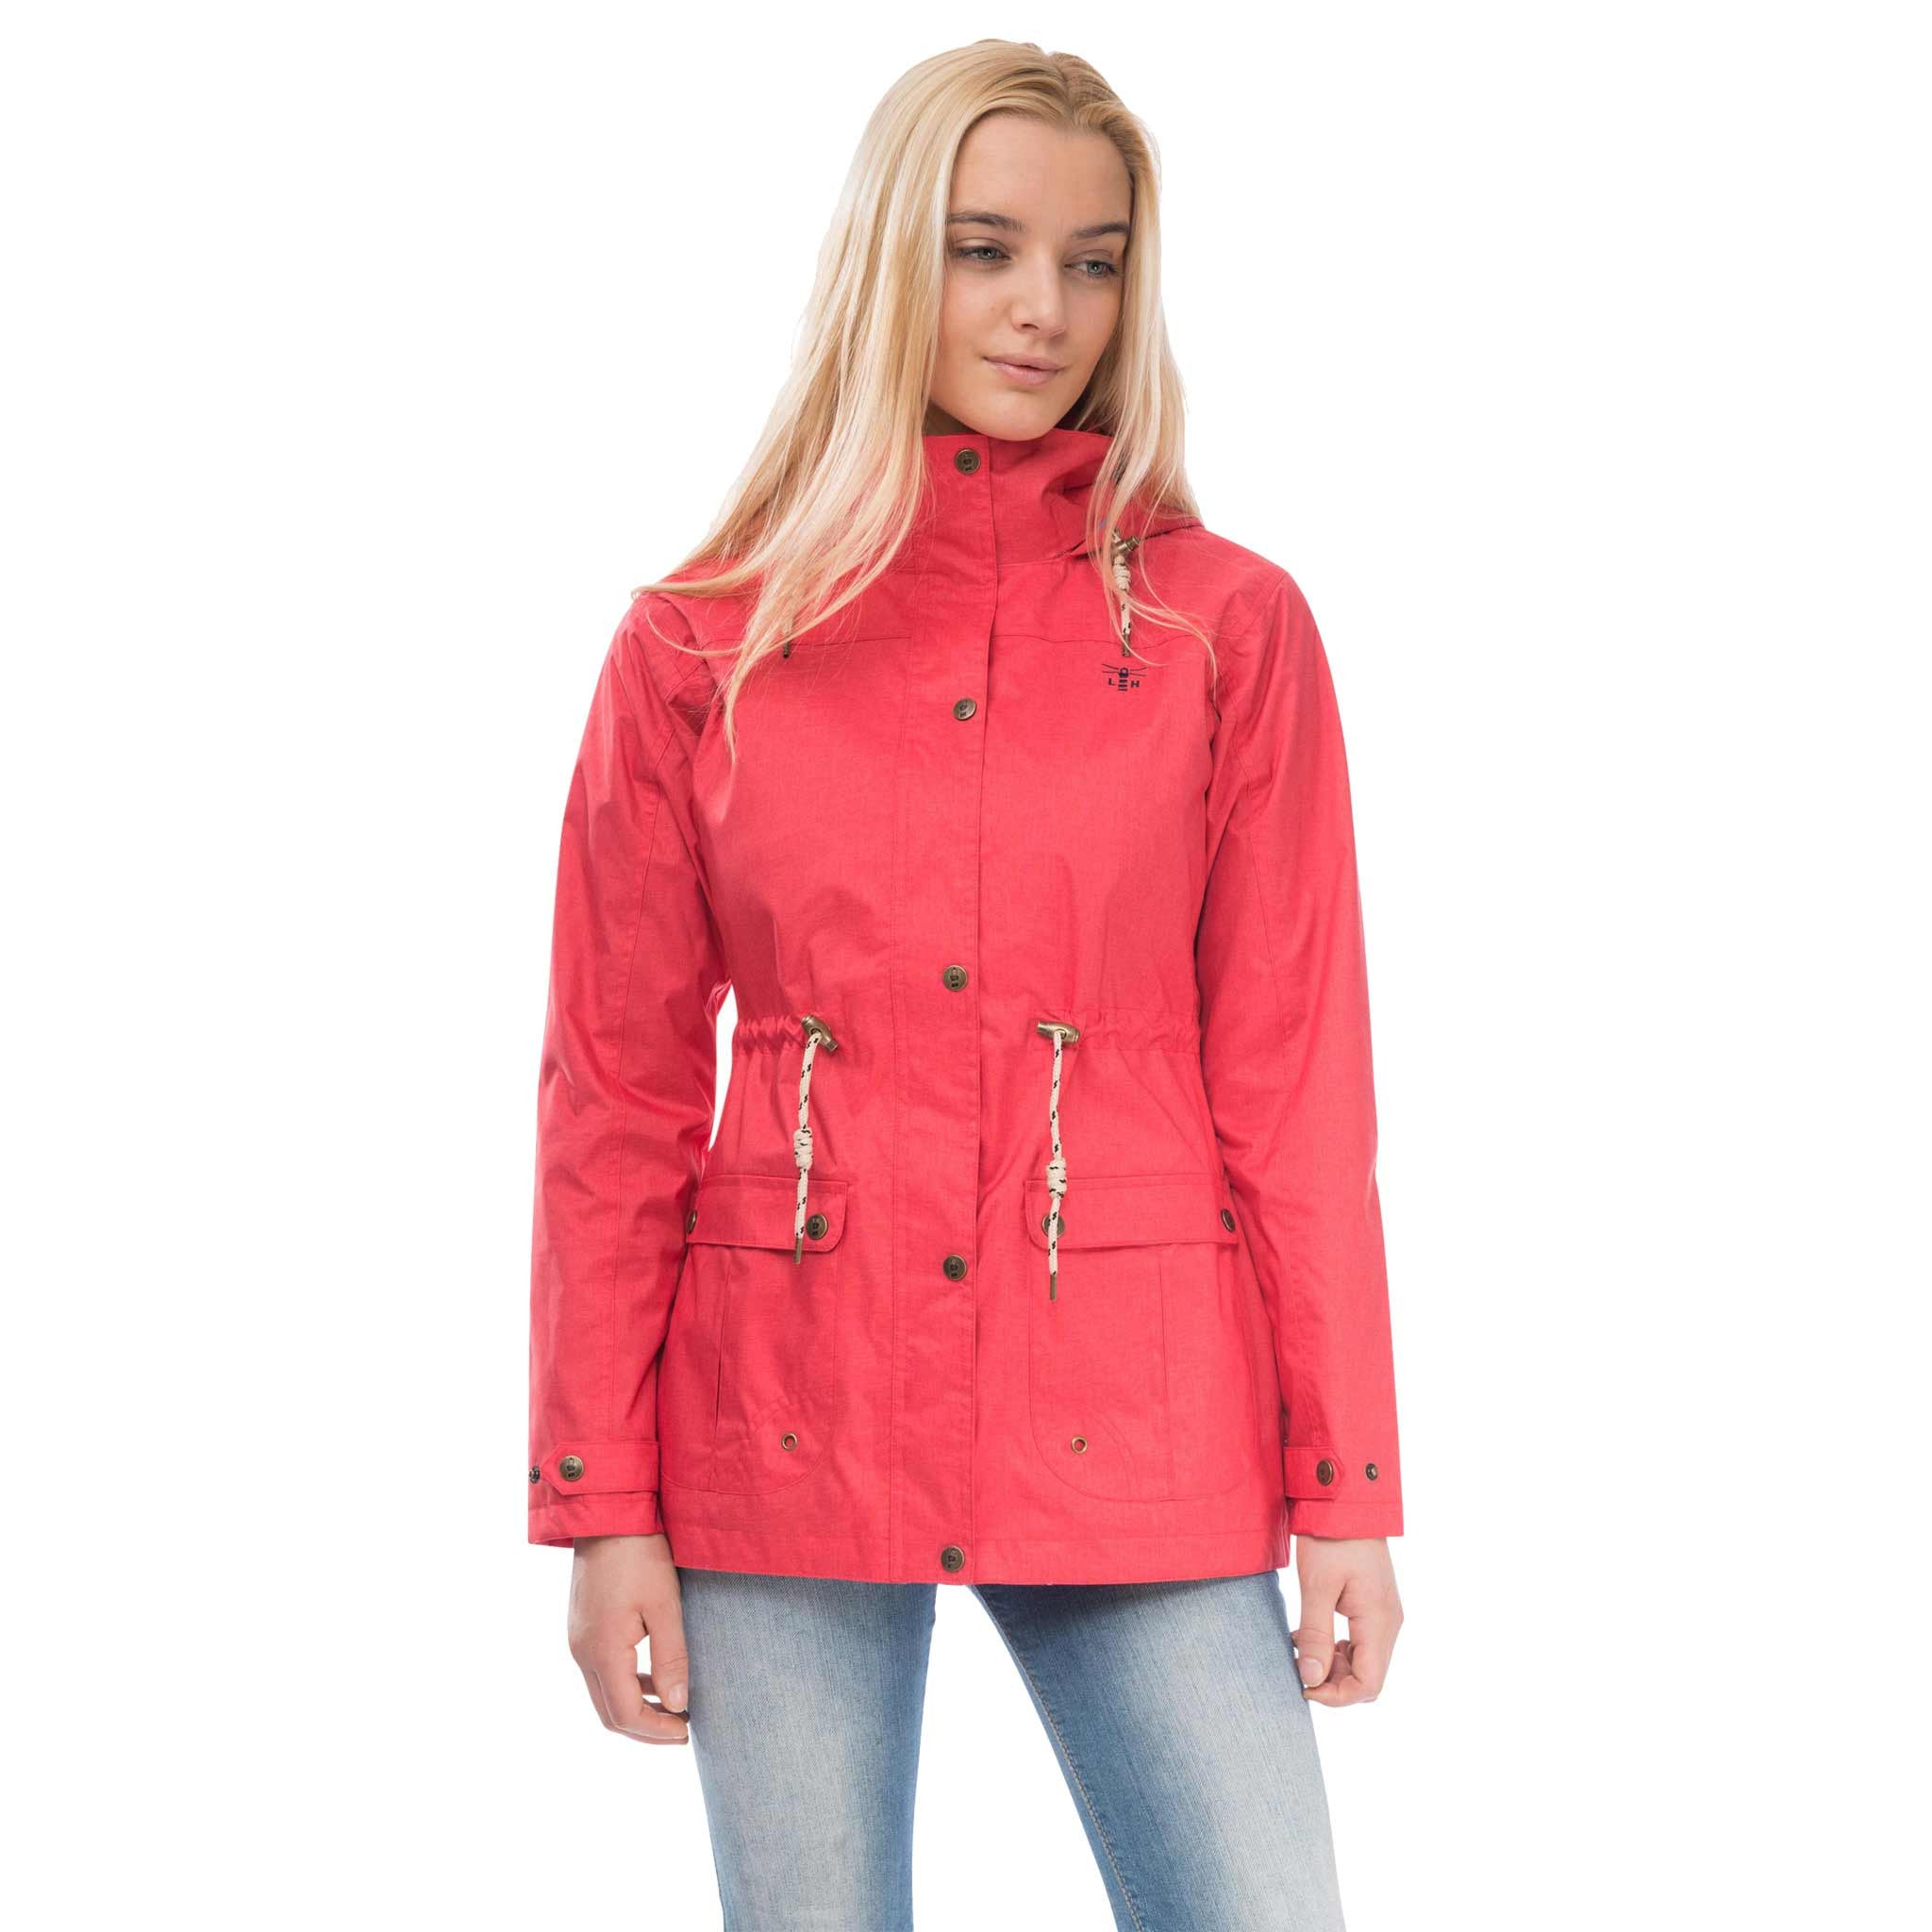 Isla Womens Waterproof Jacket in Watermelon Red, Modelled Front View | Lighthouse